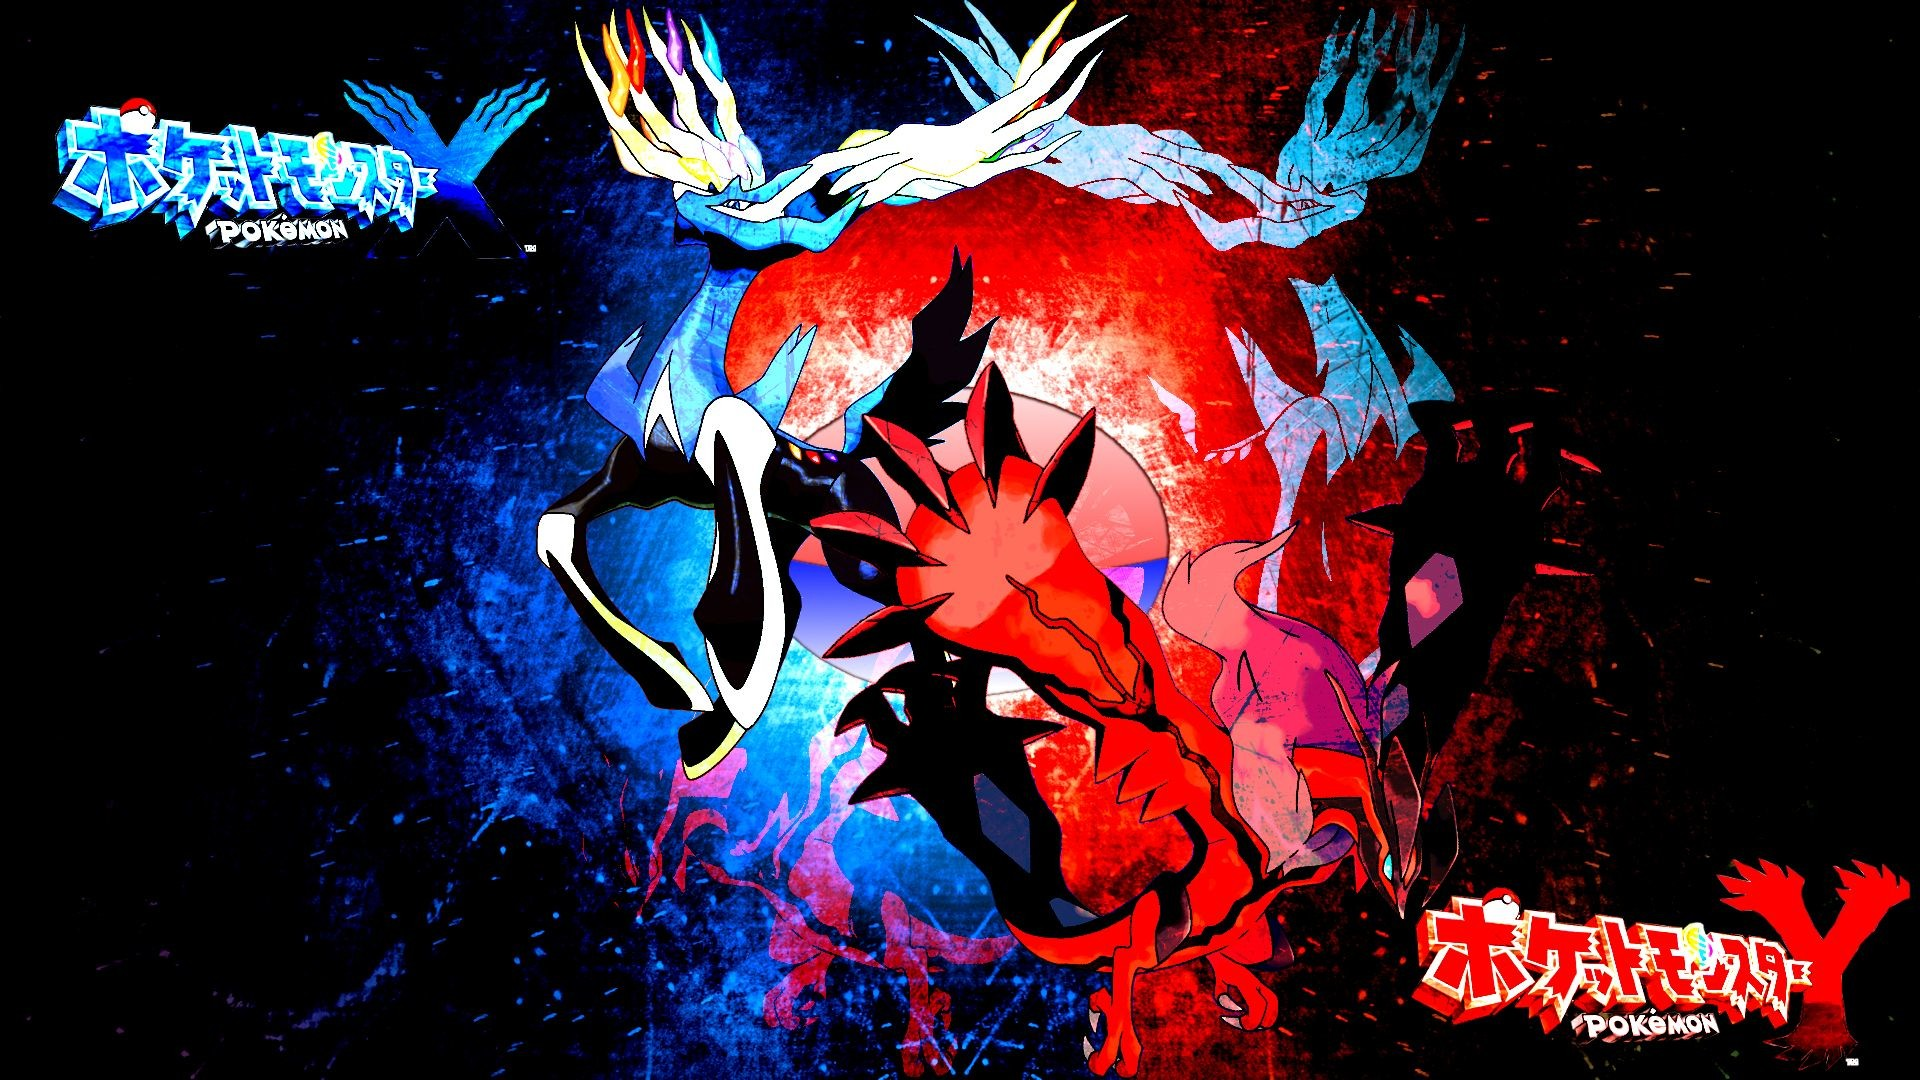 Res: 1920x1080, Free Download Pokemon Lucario Wallpapers – Page 2 – wallpaper.wiki